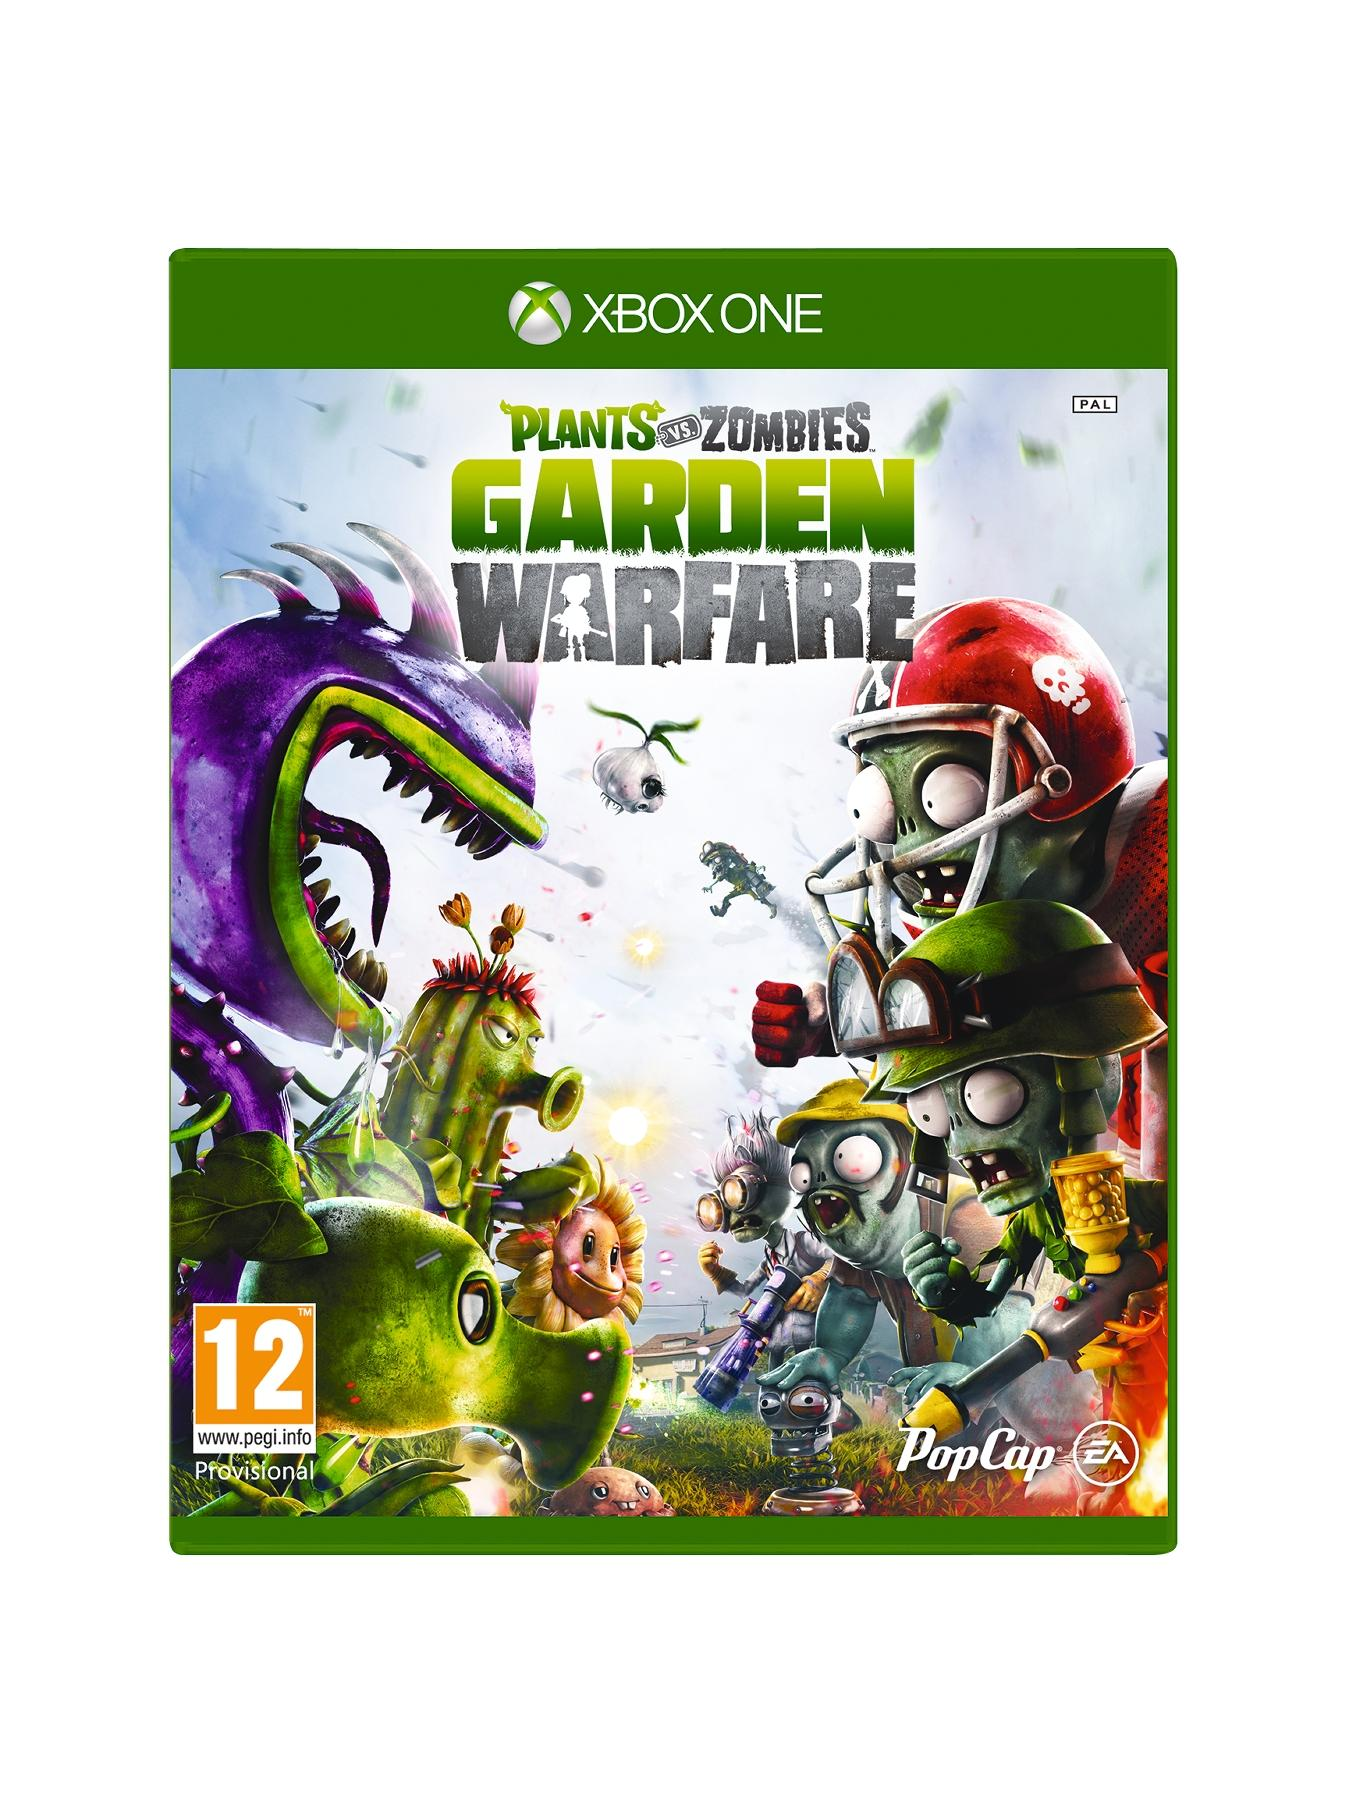 Kids | Xbox one games | Xbox one | Gaming & dvd | www.very.co.uk